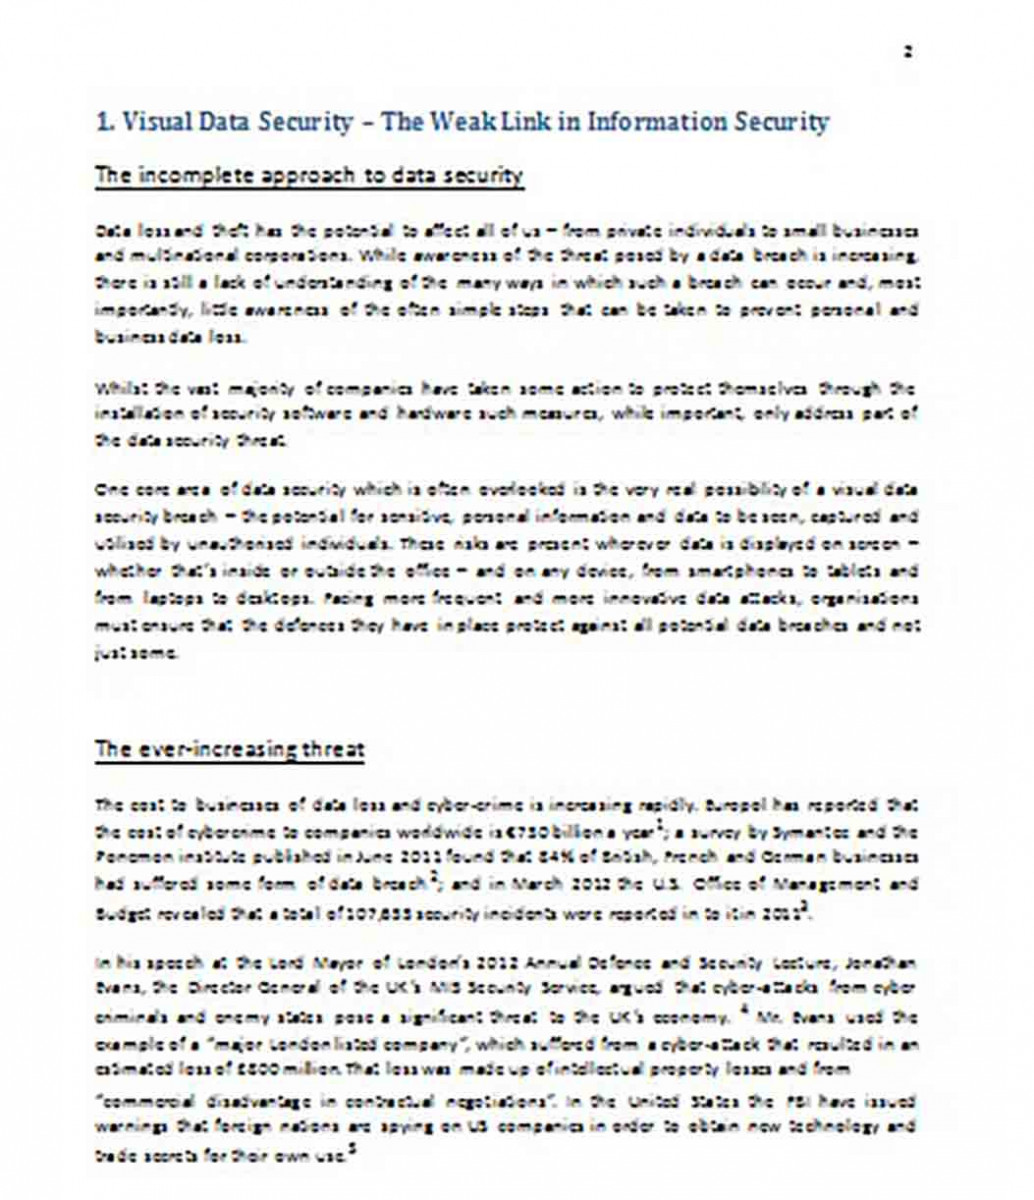 Visual Data Security White Paper